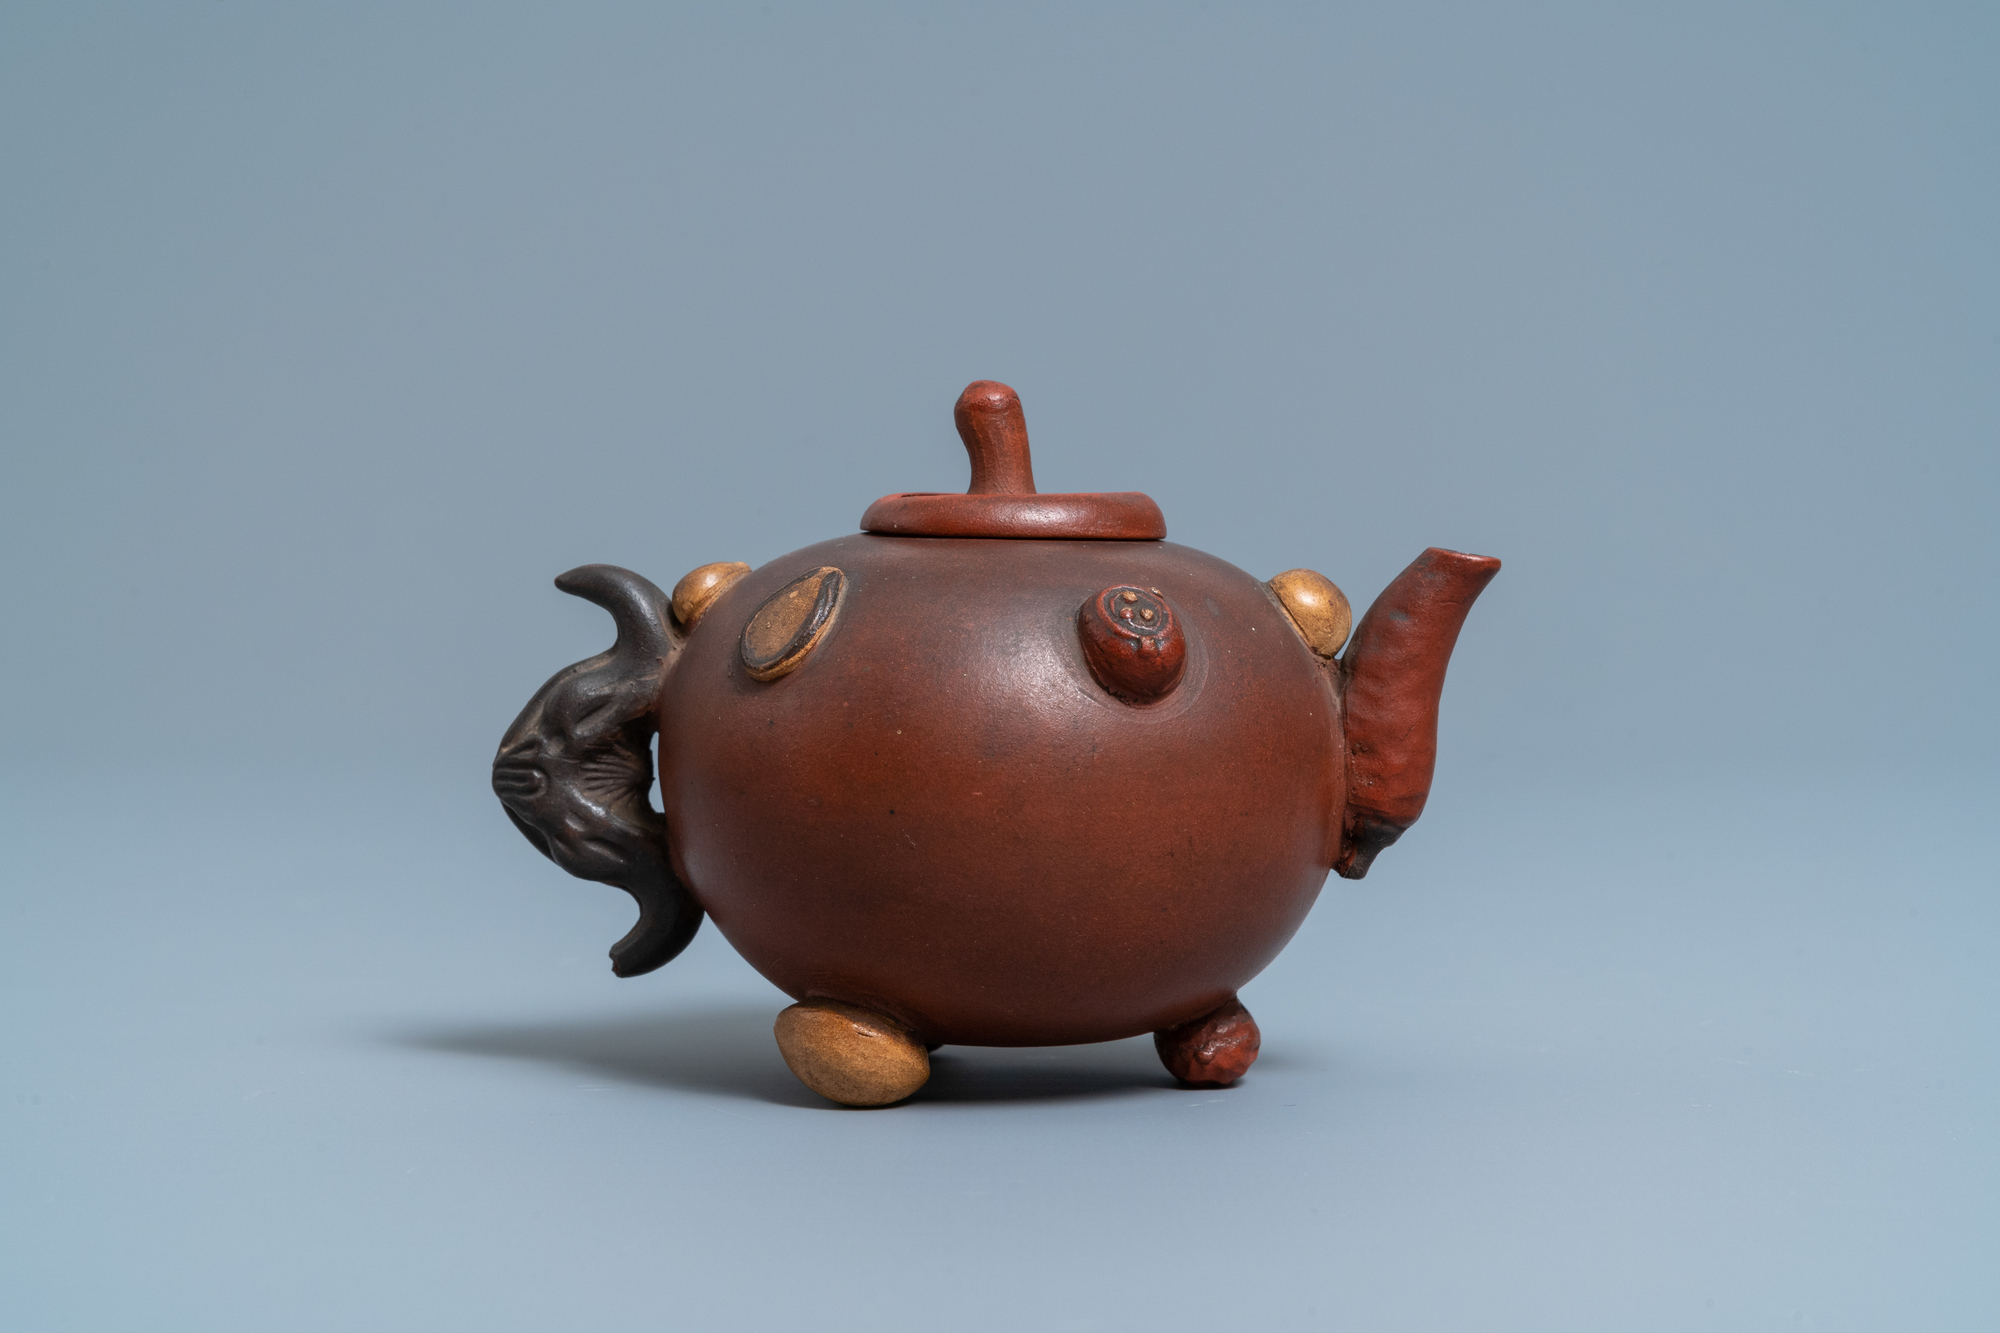 A Chinese Yixing stoneware teapot and cover with applied nuts, 19/20th C. - Image 4 of 7